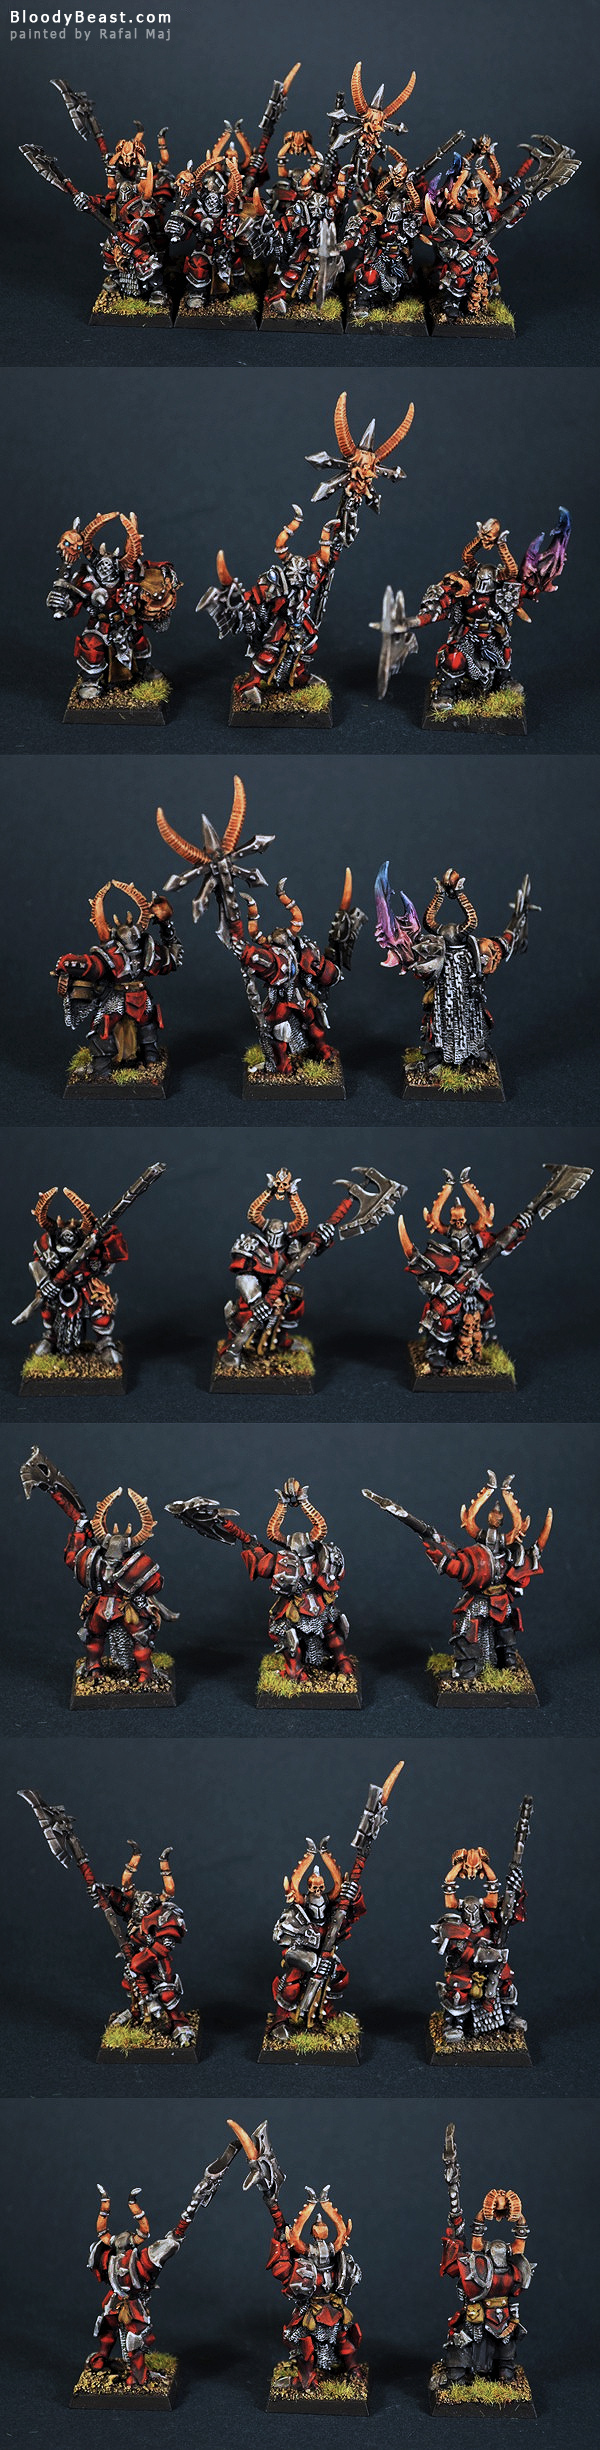 Chaos Chosen Warriors of Khorne painted by Rafal Maj (BloodyBeast.com)